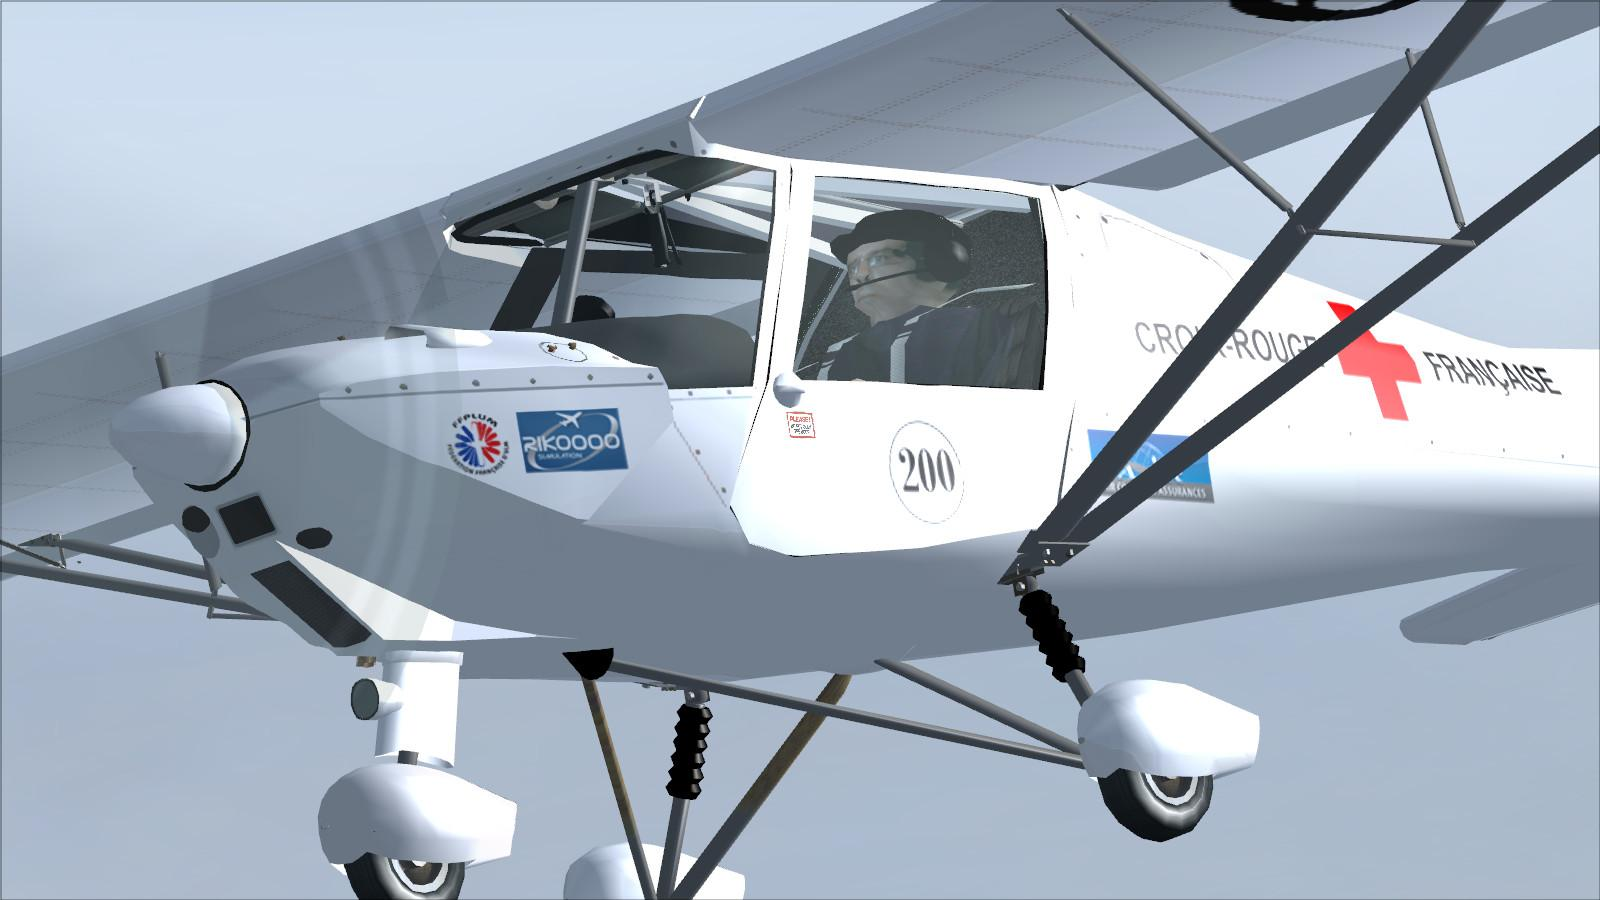 Download comco ikarus c42 red cross fsx p3d rikoooo Ikarus